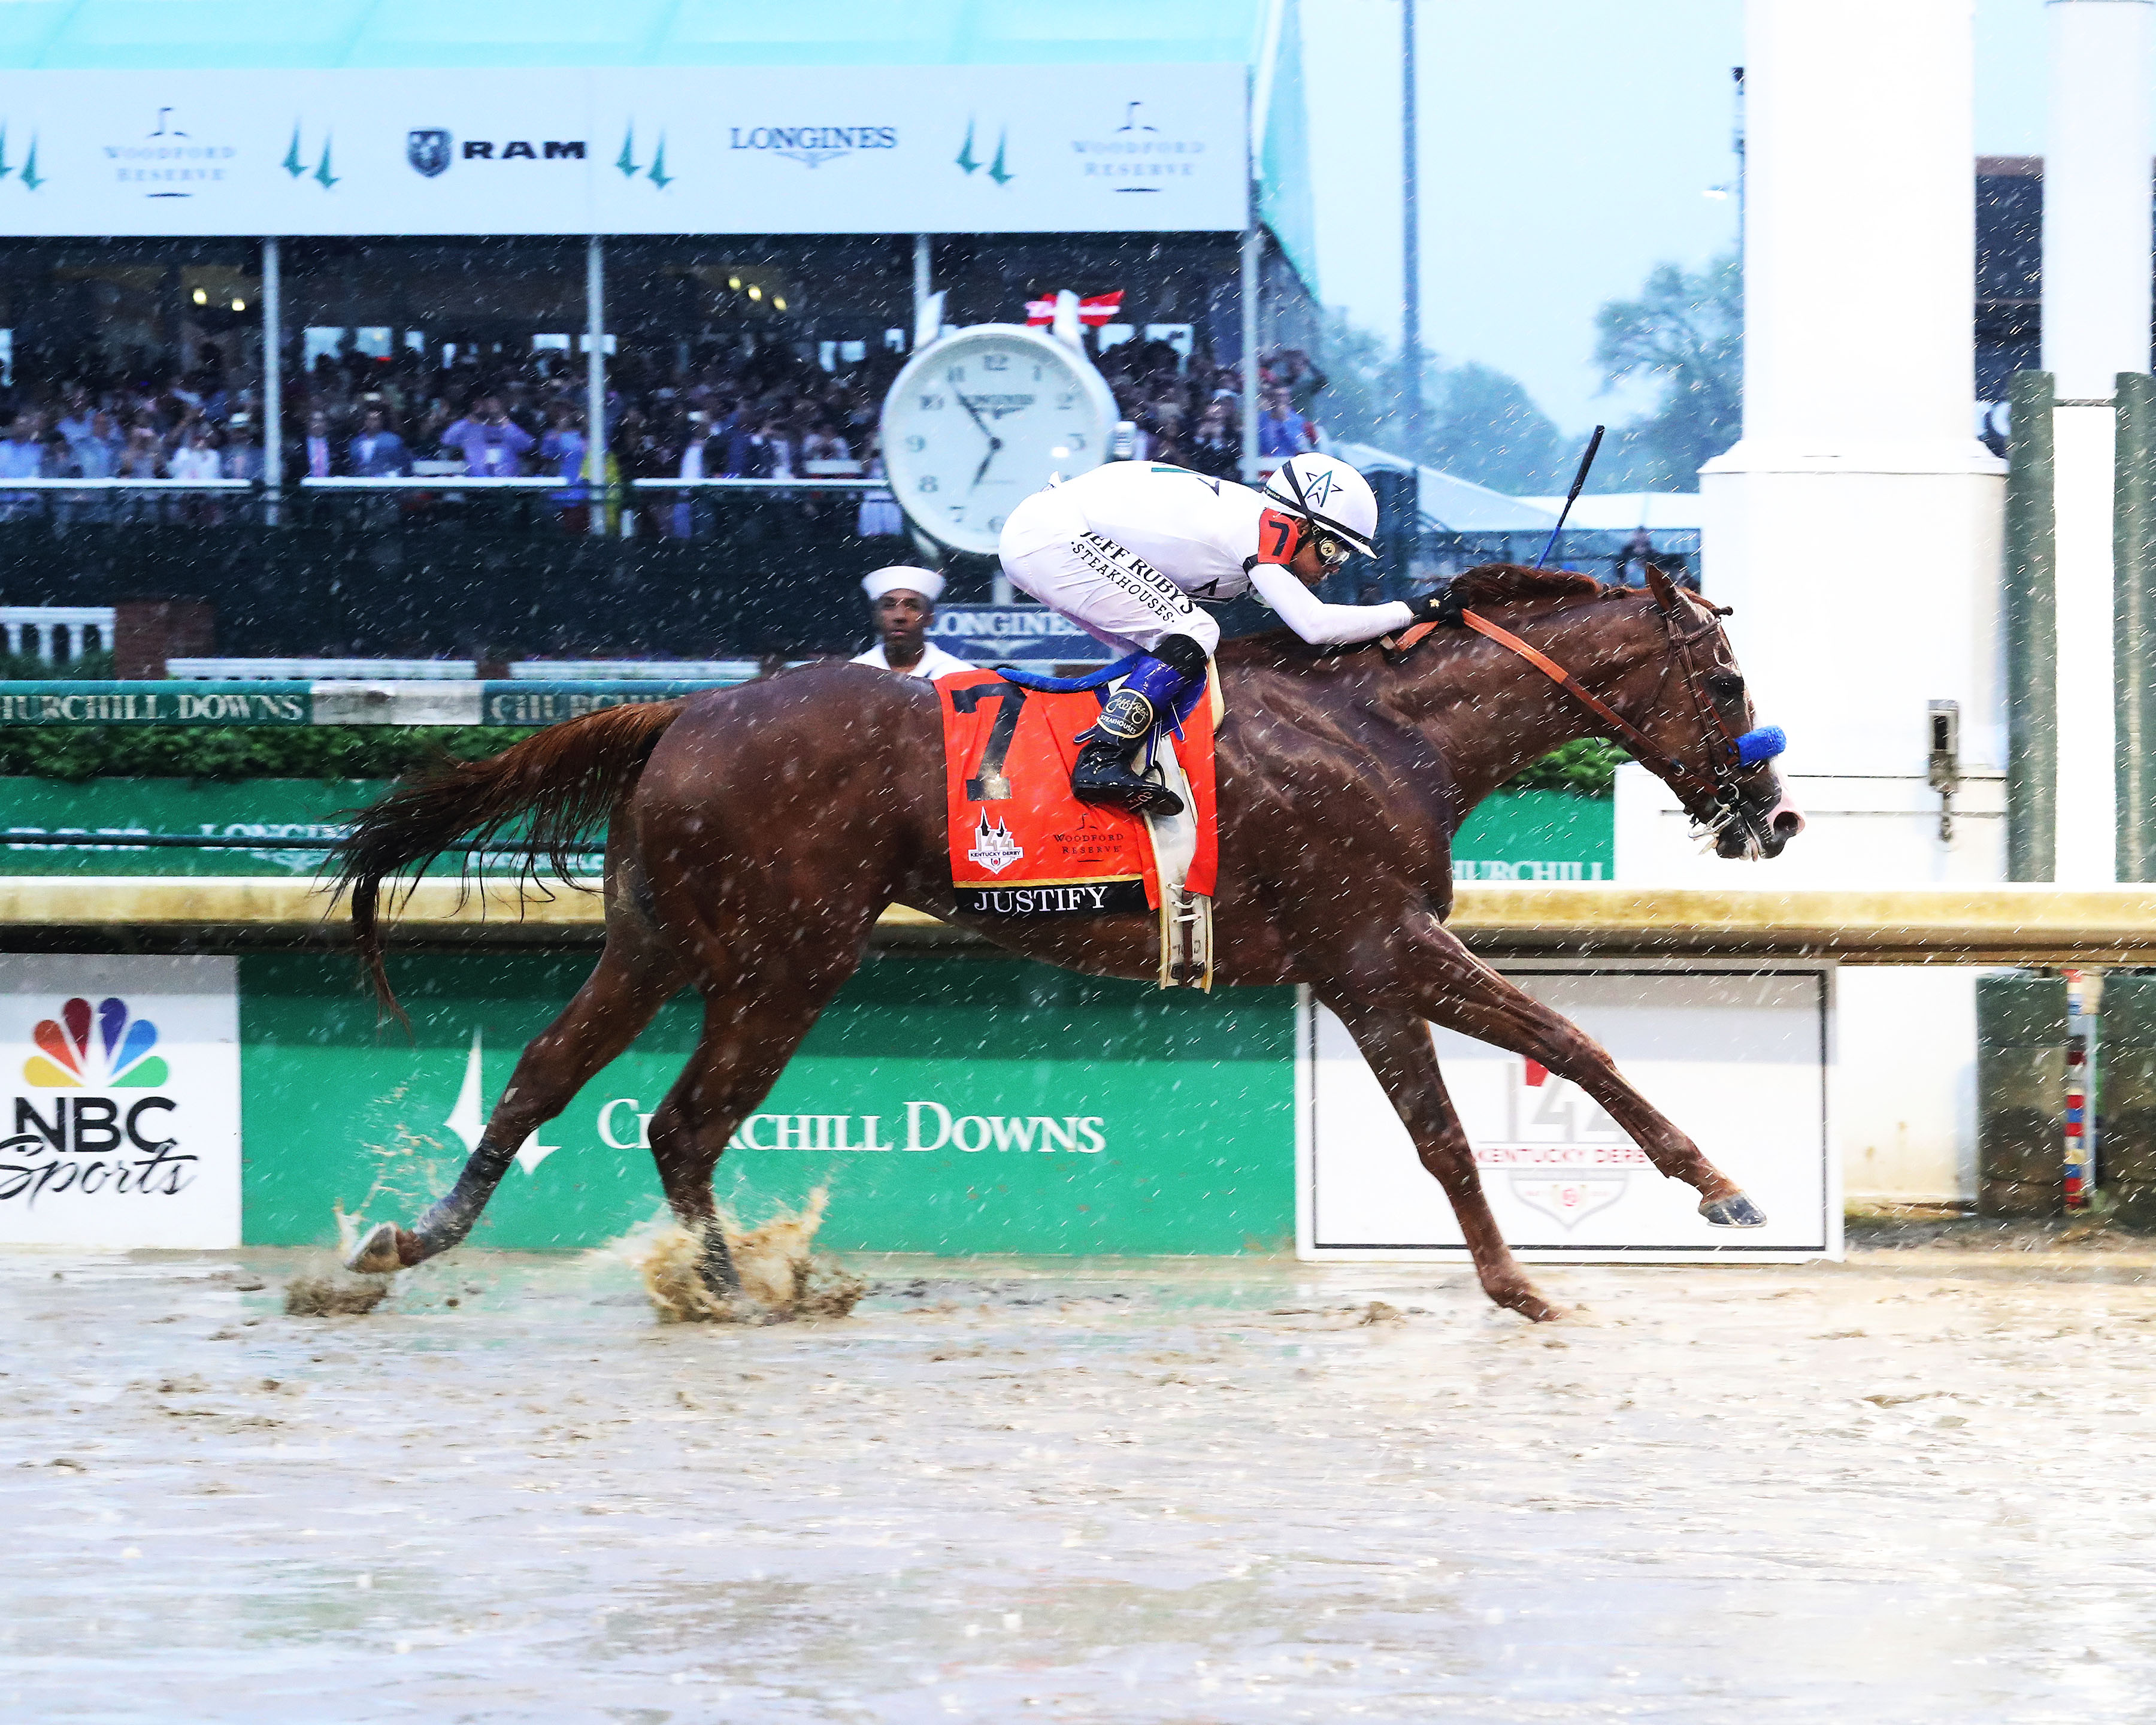 Keeneland September Yearling Sale Graduates Justify Good Magic Run 1 2 In 144th Kentucky Derby Keeneland